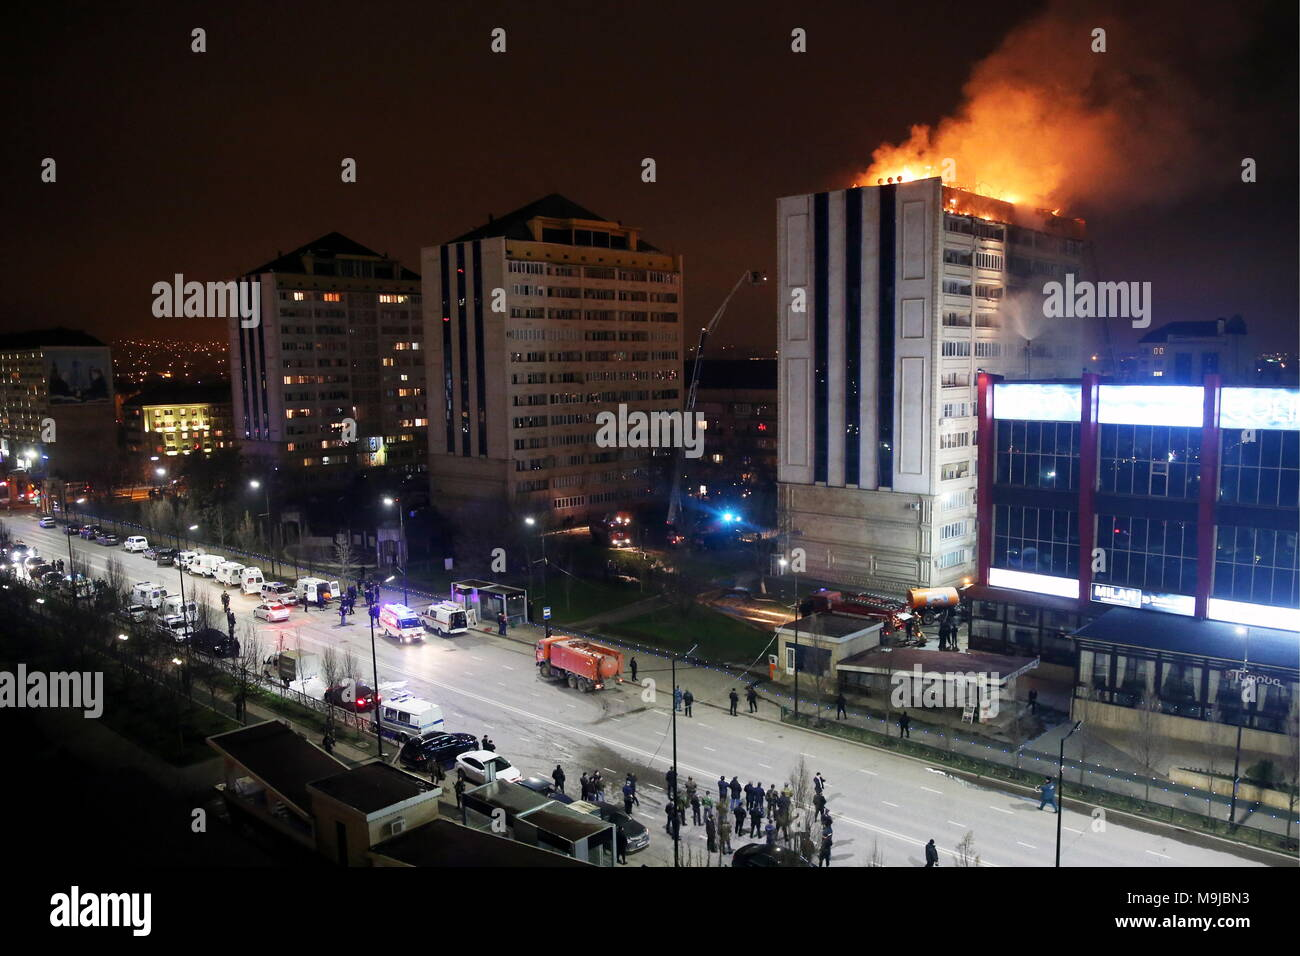 Grozny, Russia. 26th Mar, 2018. GROZNY, RUSSIA - MARCH 26, 2018: Top floors of a twelve-storey apartment building have caught fire in central Grozny, the capital of Chechnya. Yelena Afonina/TASS Credit: ITAR-TASS News Agency/Alamy Live News - Stock Image